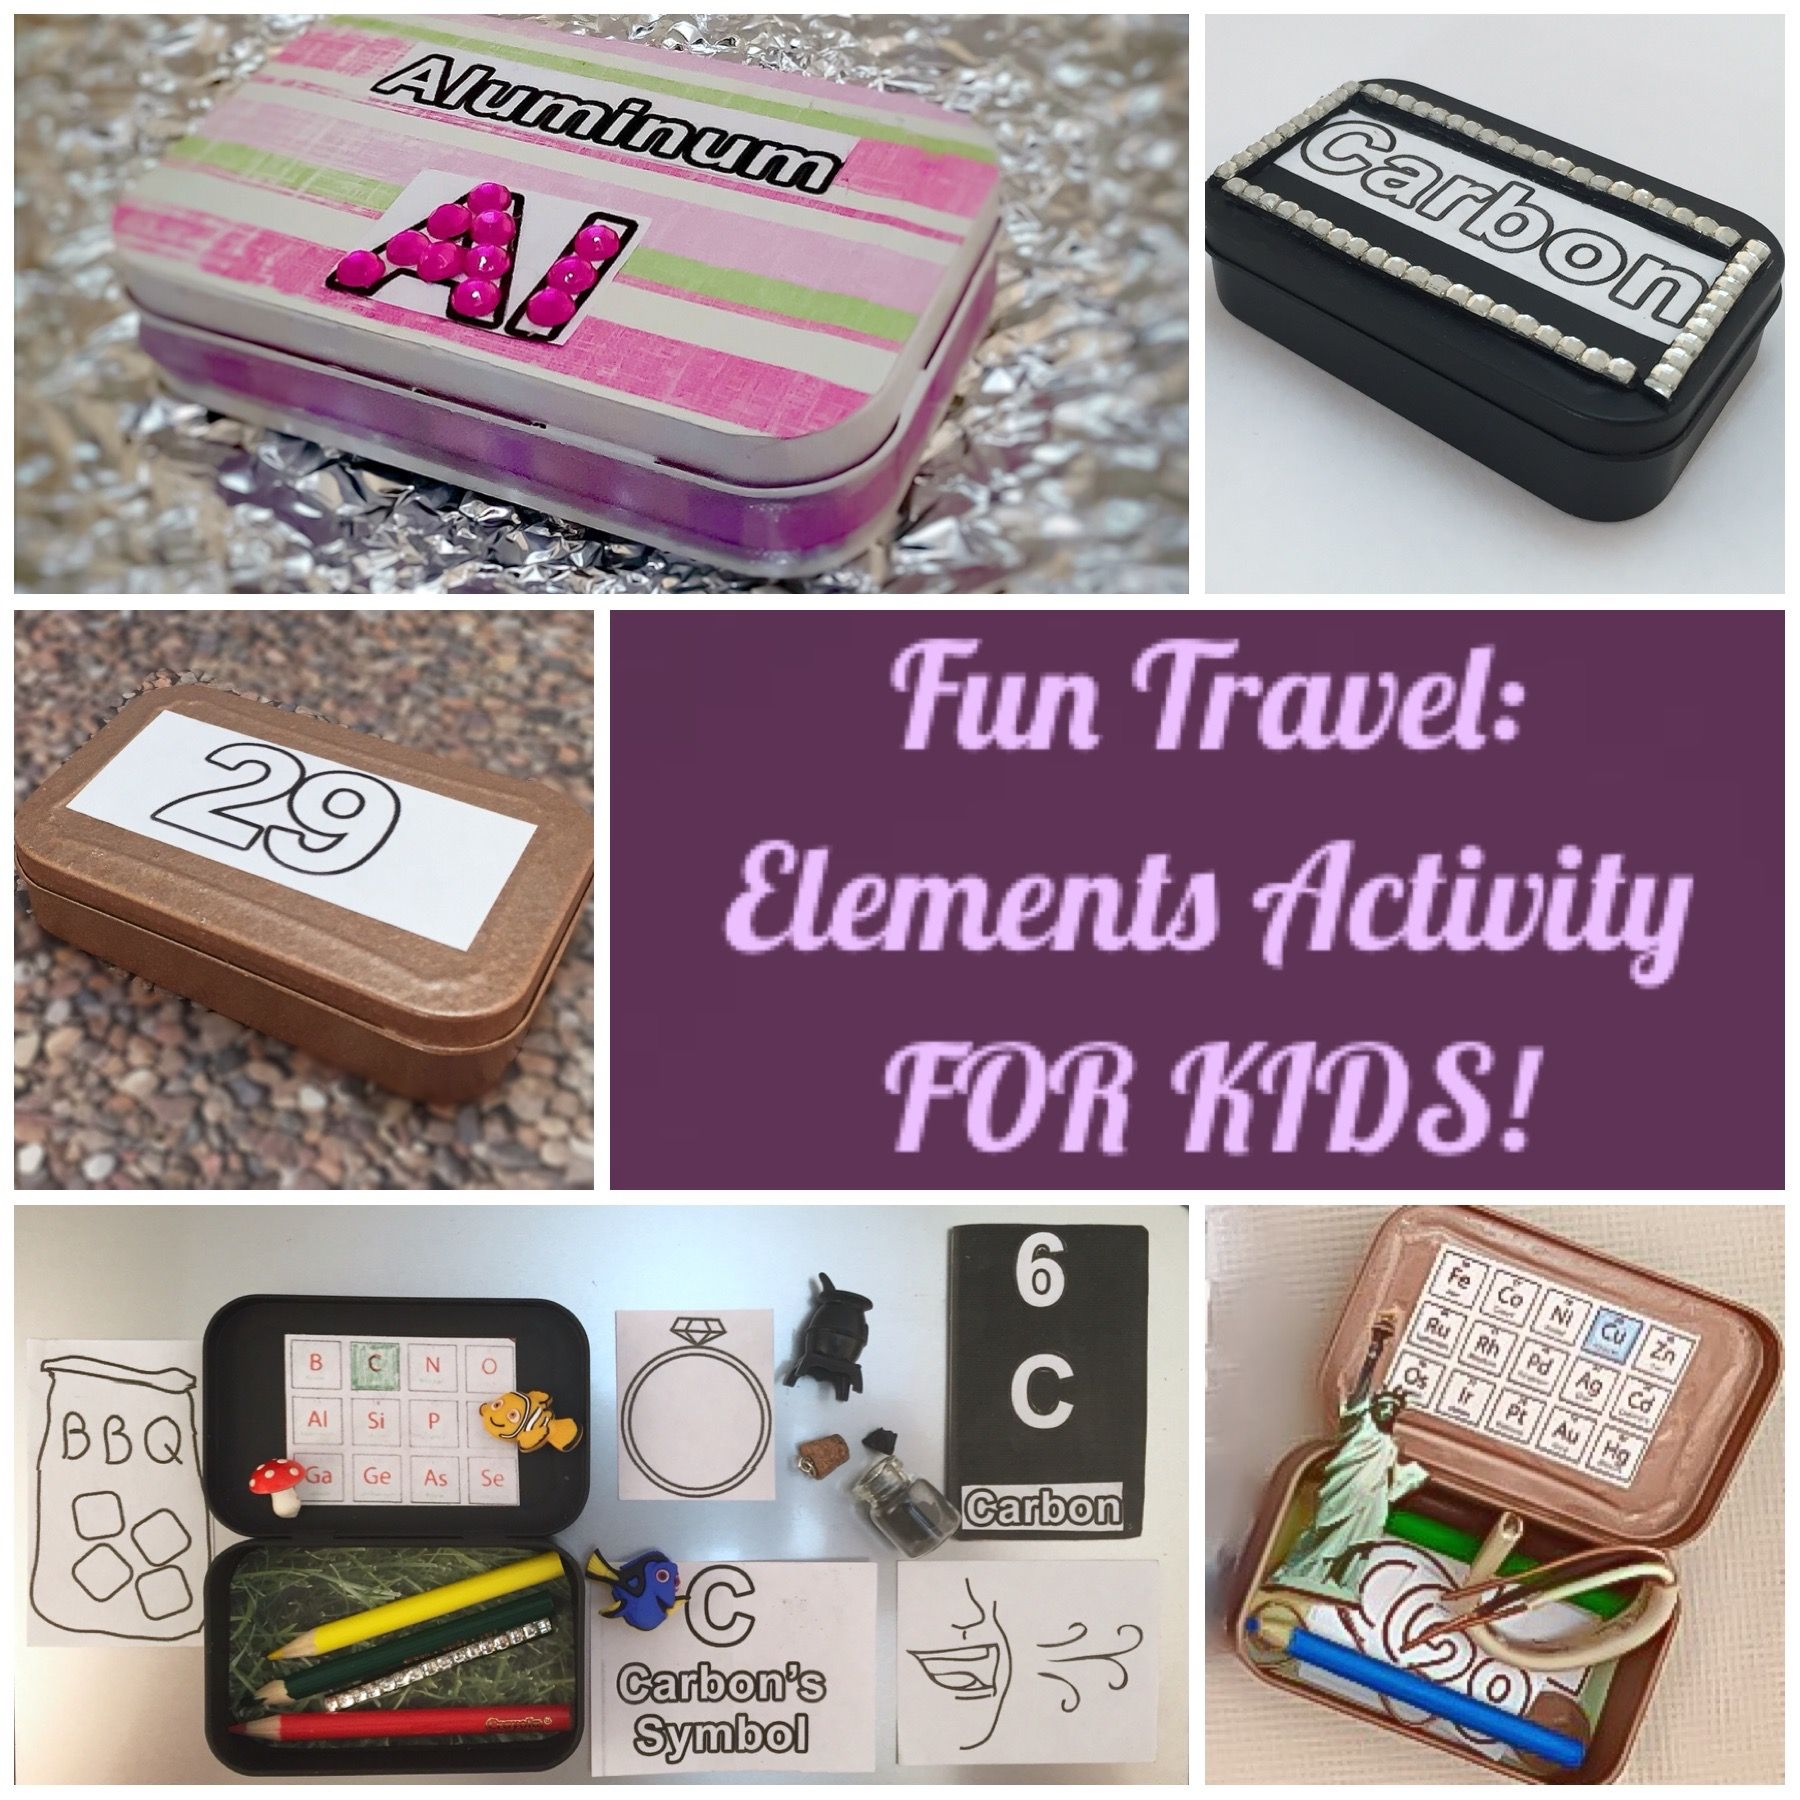 Travel periodic table elements activity for kids using altoid tins travel periodic table elements activity for kids using altoid tins urtaz Images